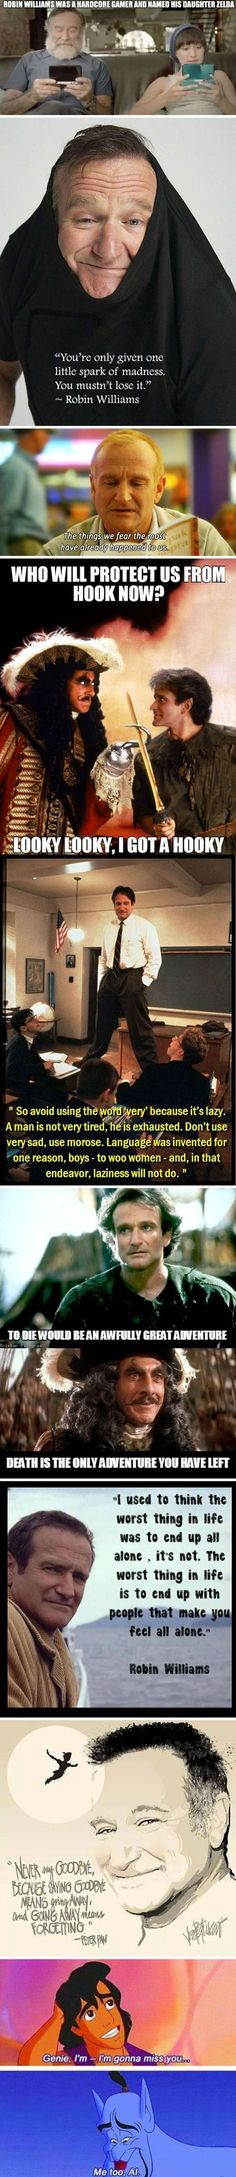 I'm sobbing because this man made a huge impact on my life and so many others, Rest In Peace Robin Williams